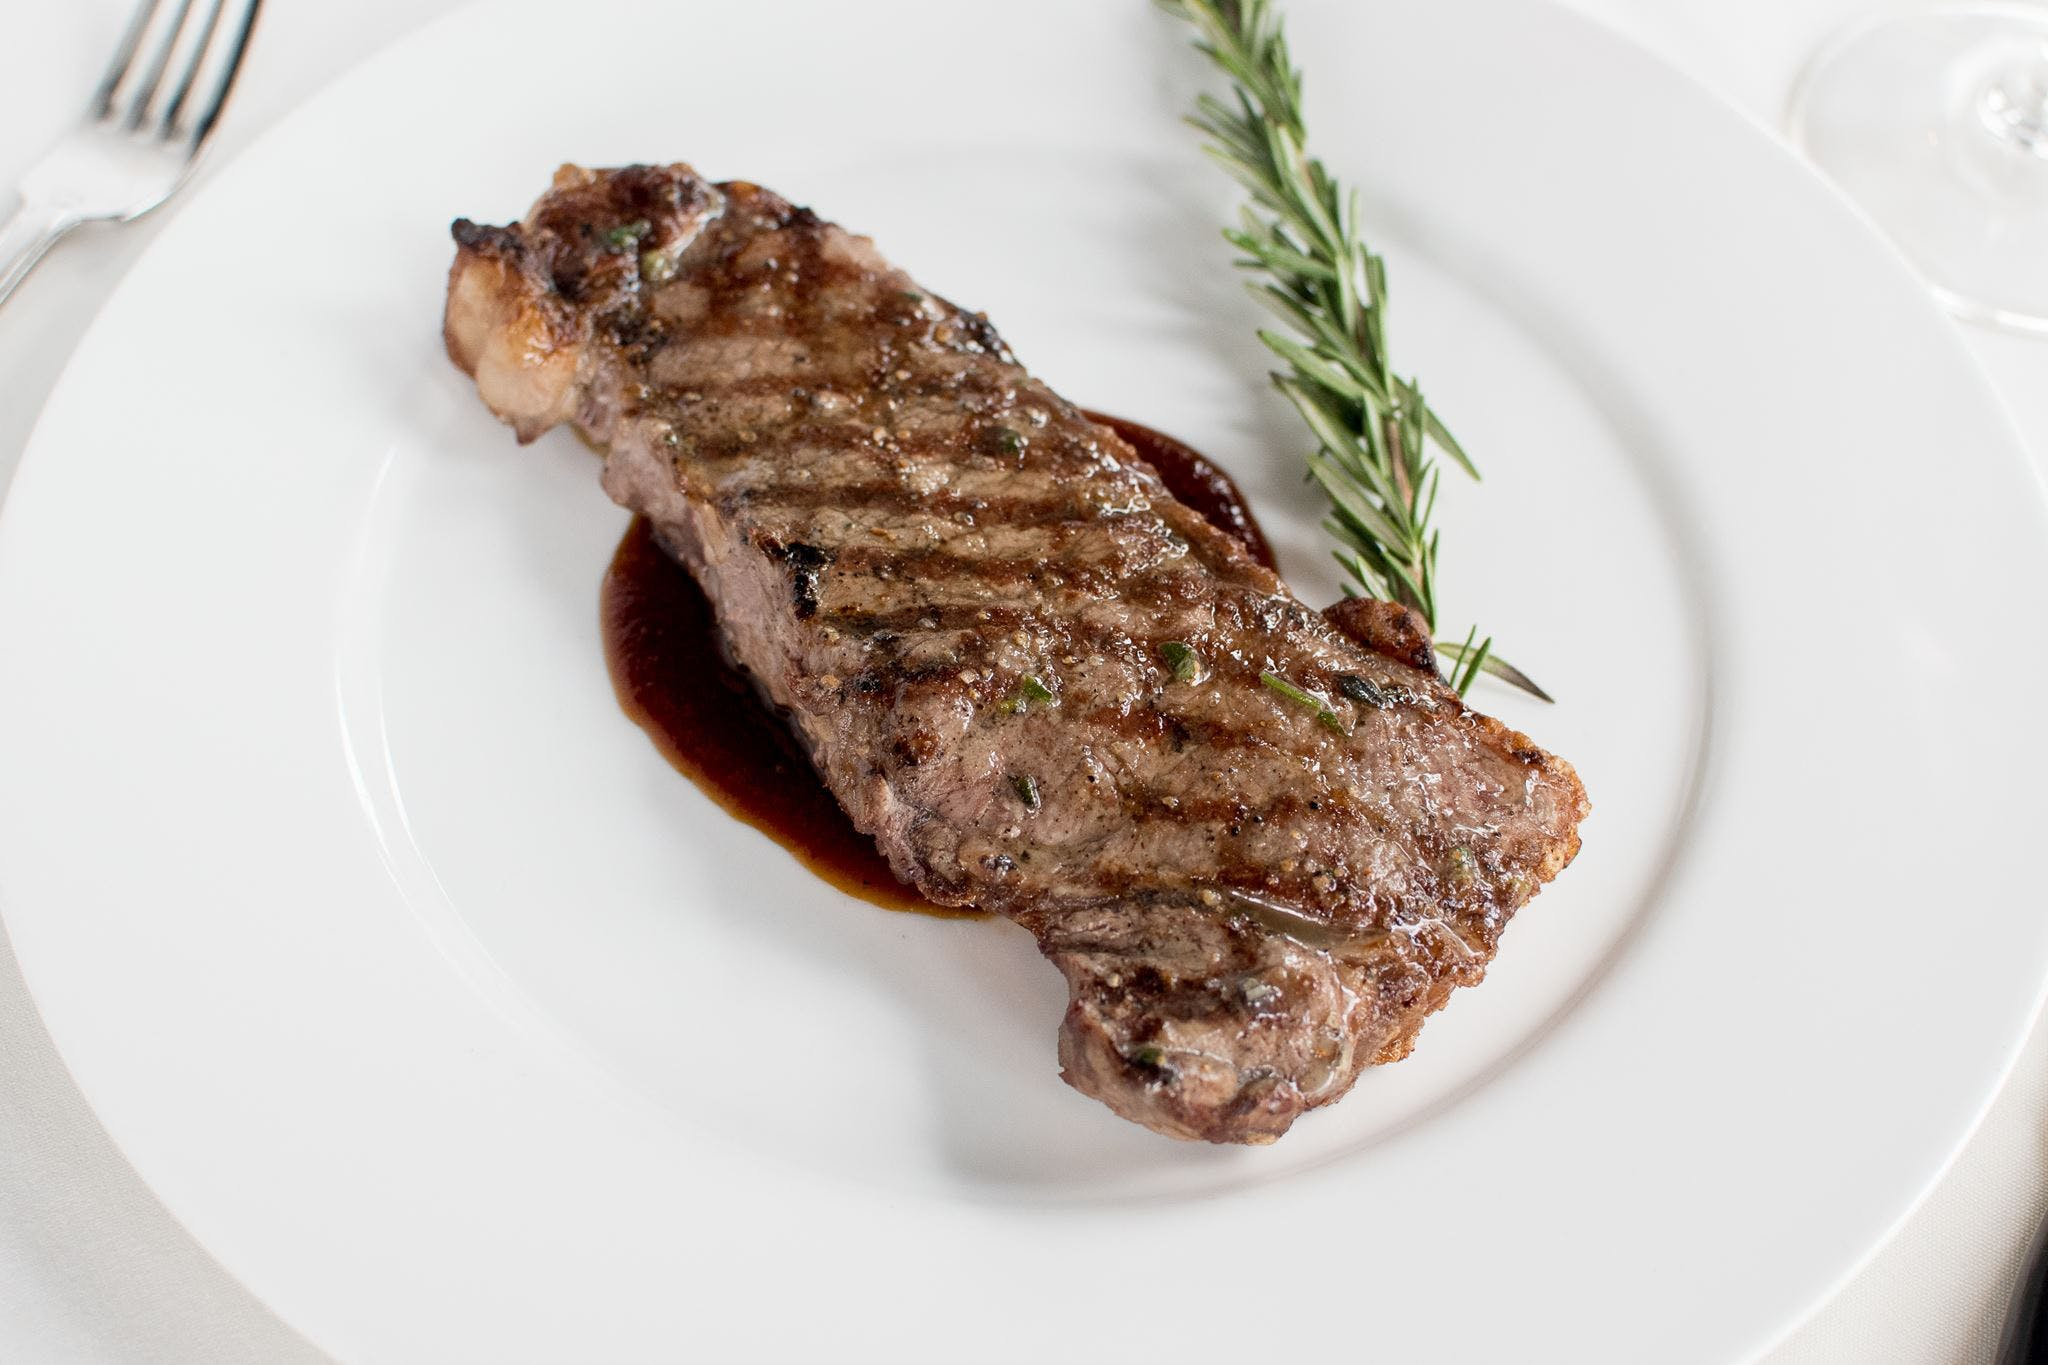 12 oz New York Strip from Johnny Delmonico's Steakhouse in Madison, WI